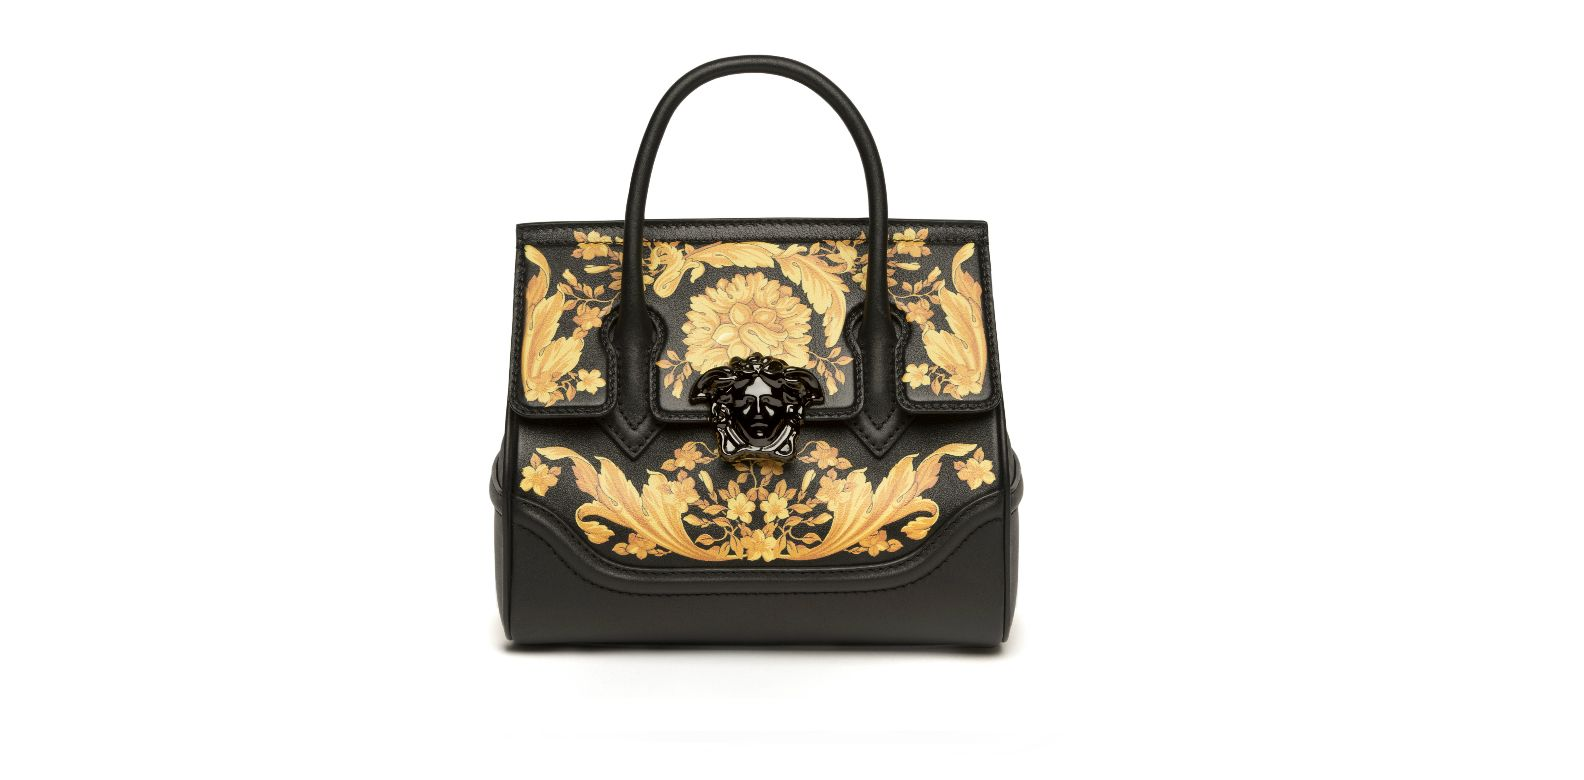 823c8eb2184f 3 Iconic Bags From Versace You Should Already Know